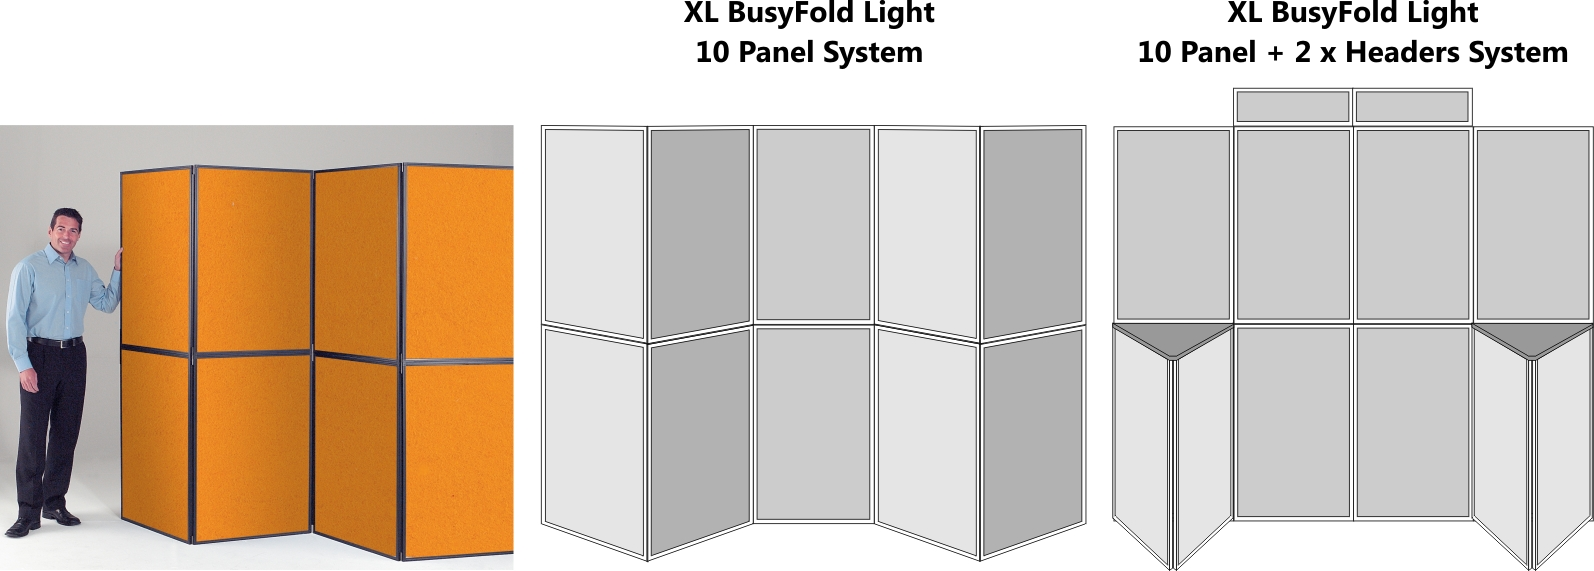 XL BusyFold Light 10 Panel Display System